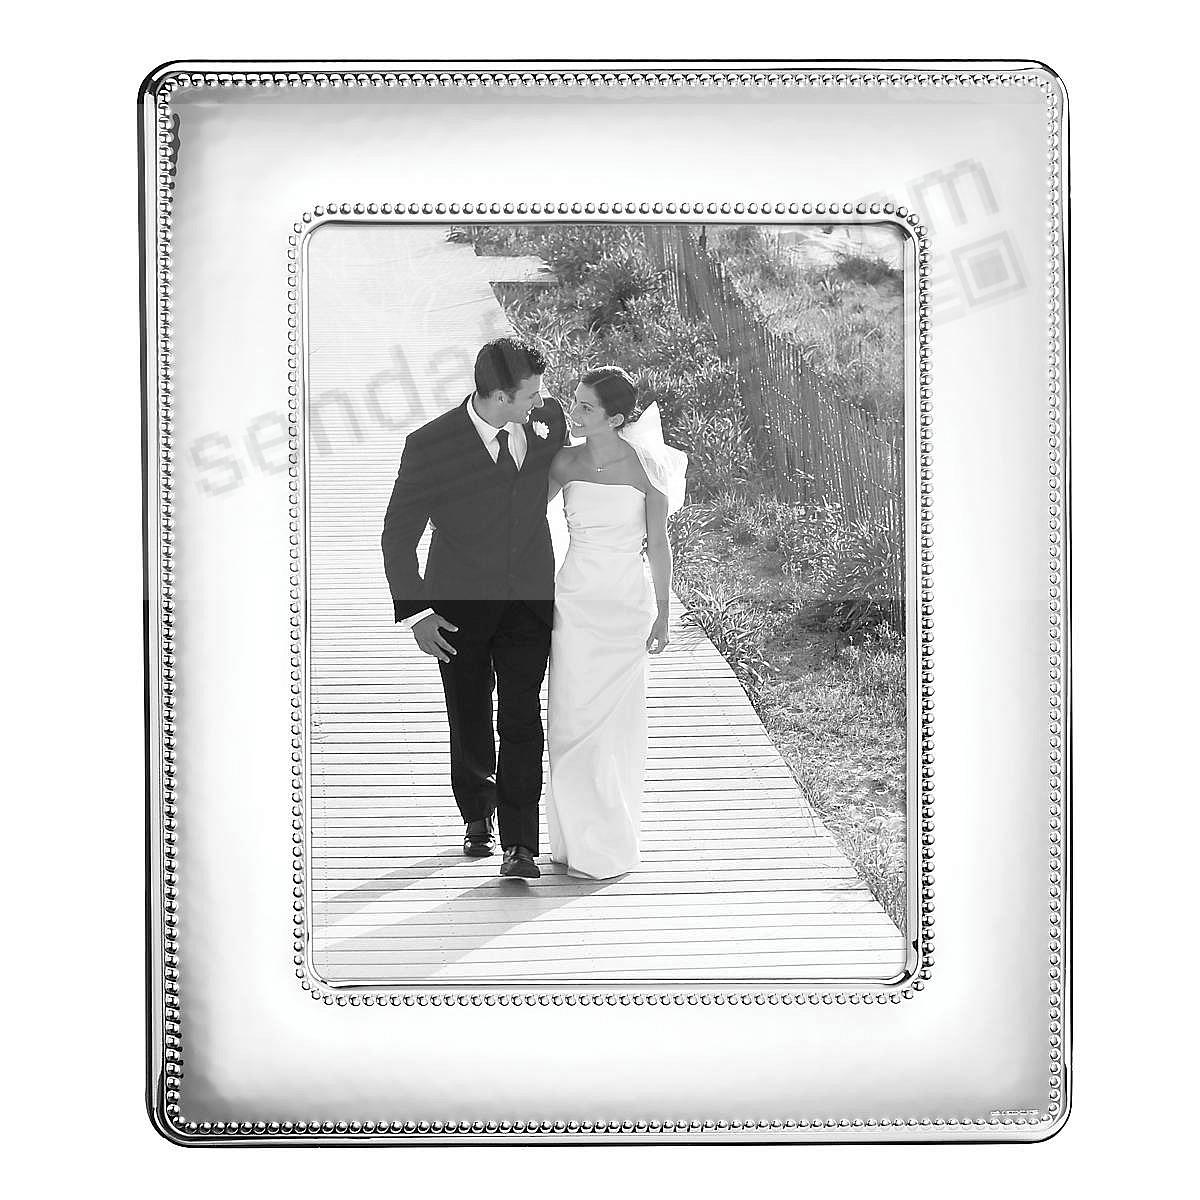 VENICE Silverplate w/Wood back 8x10 frame by Reed & Barton®